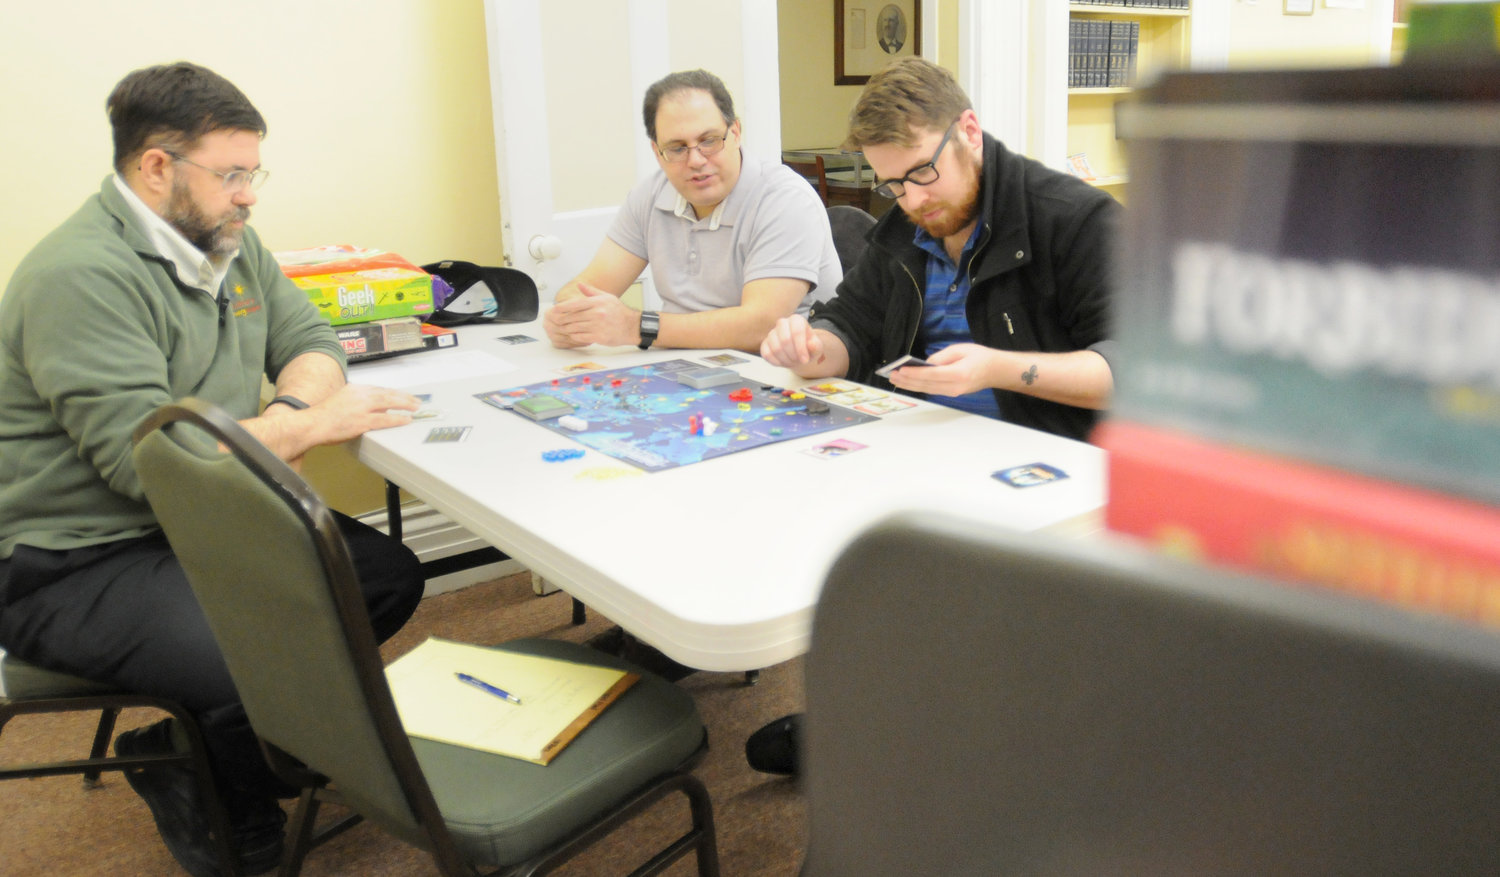 GAME NIGHT — Peter Chien, Unplug and Play organizer and librarian at Jervis, Michael Magliocca, and Brennan Pimpinella gather around a table at the library to play Pandemic.